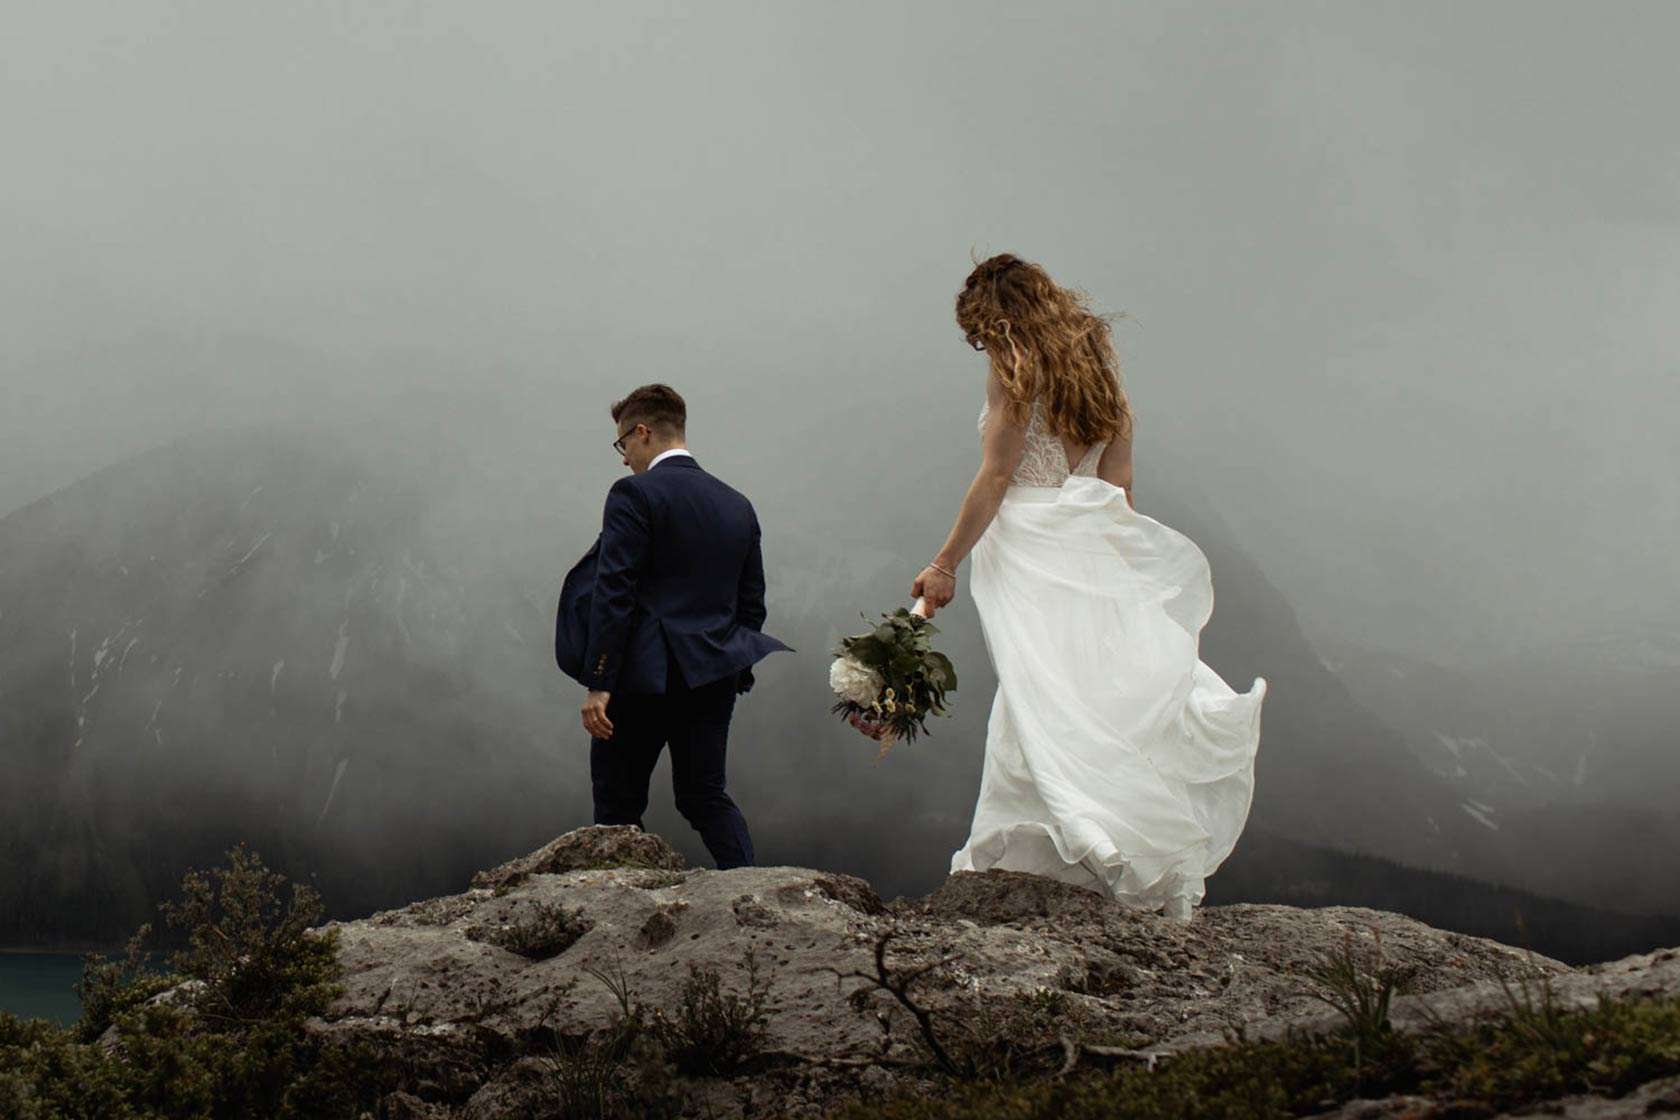 Kananaskis-Hiking-Elopement-Photographers-19-1